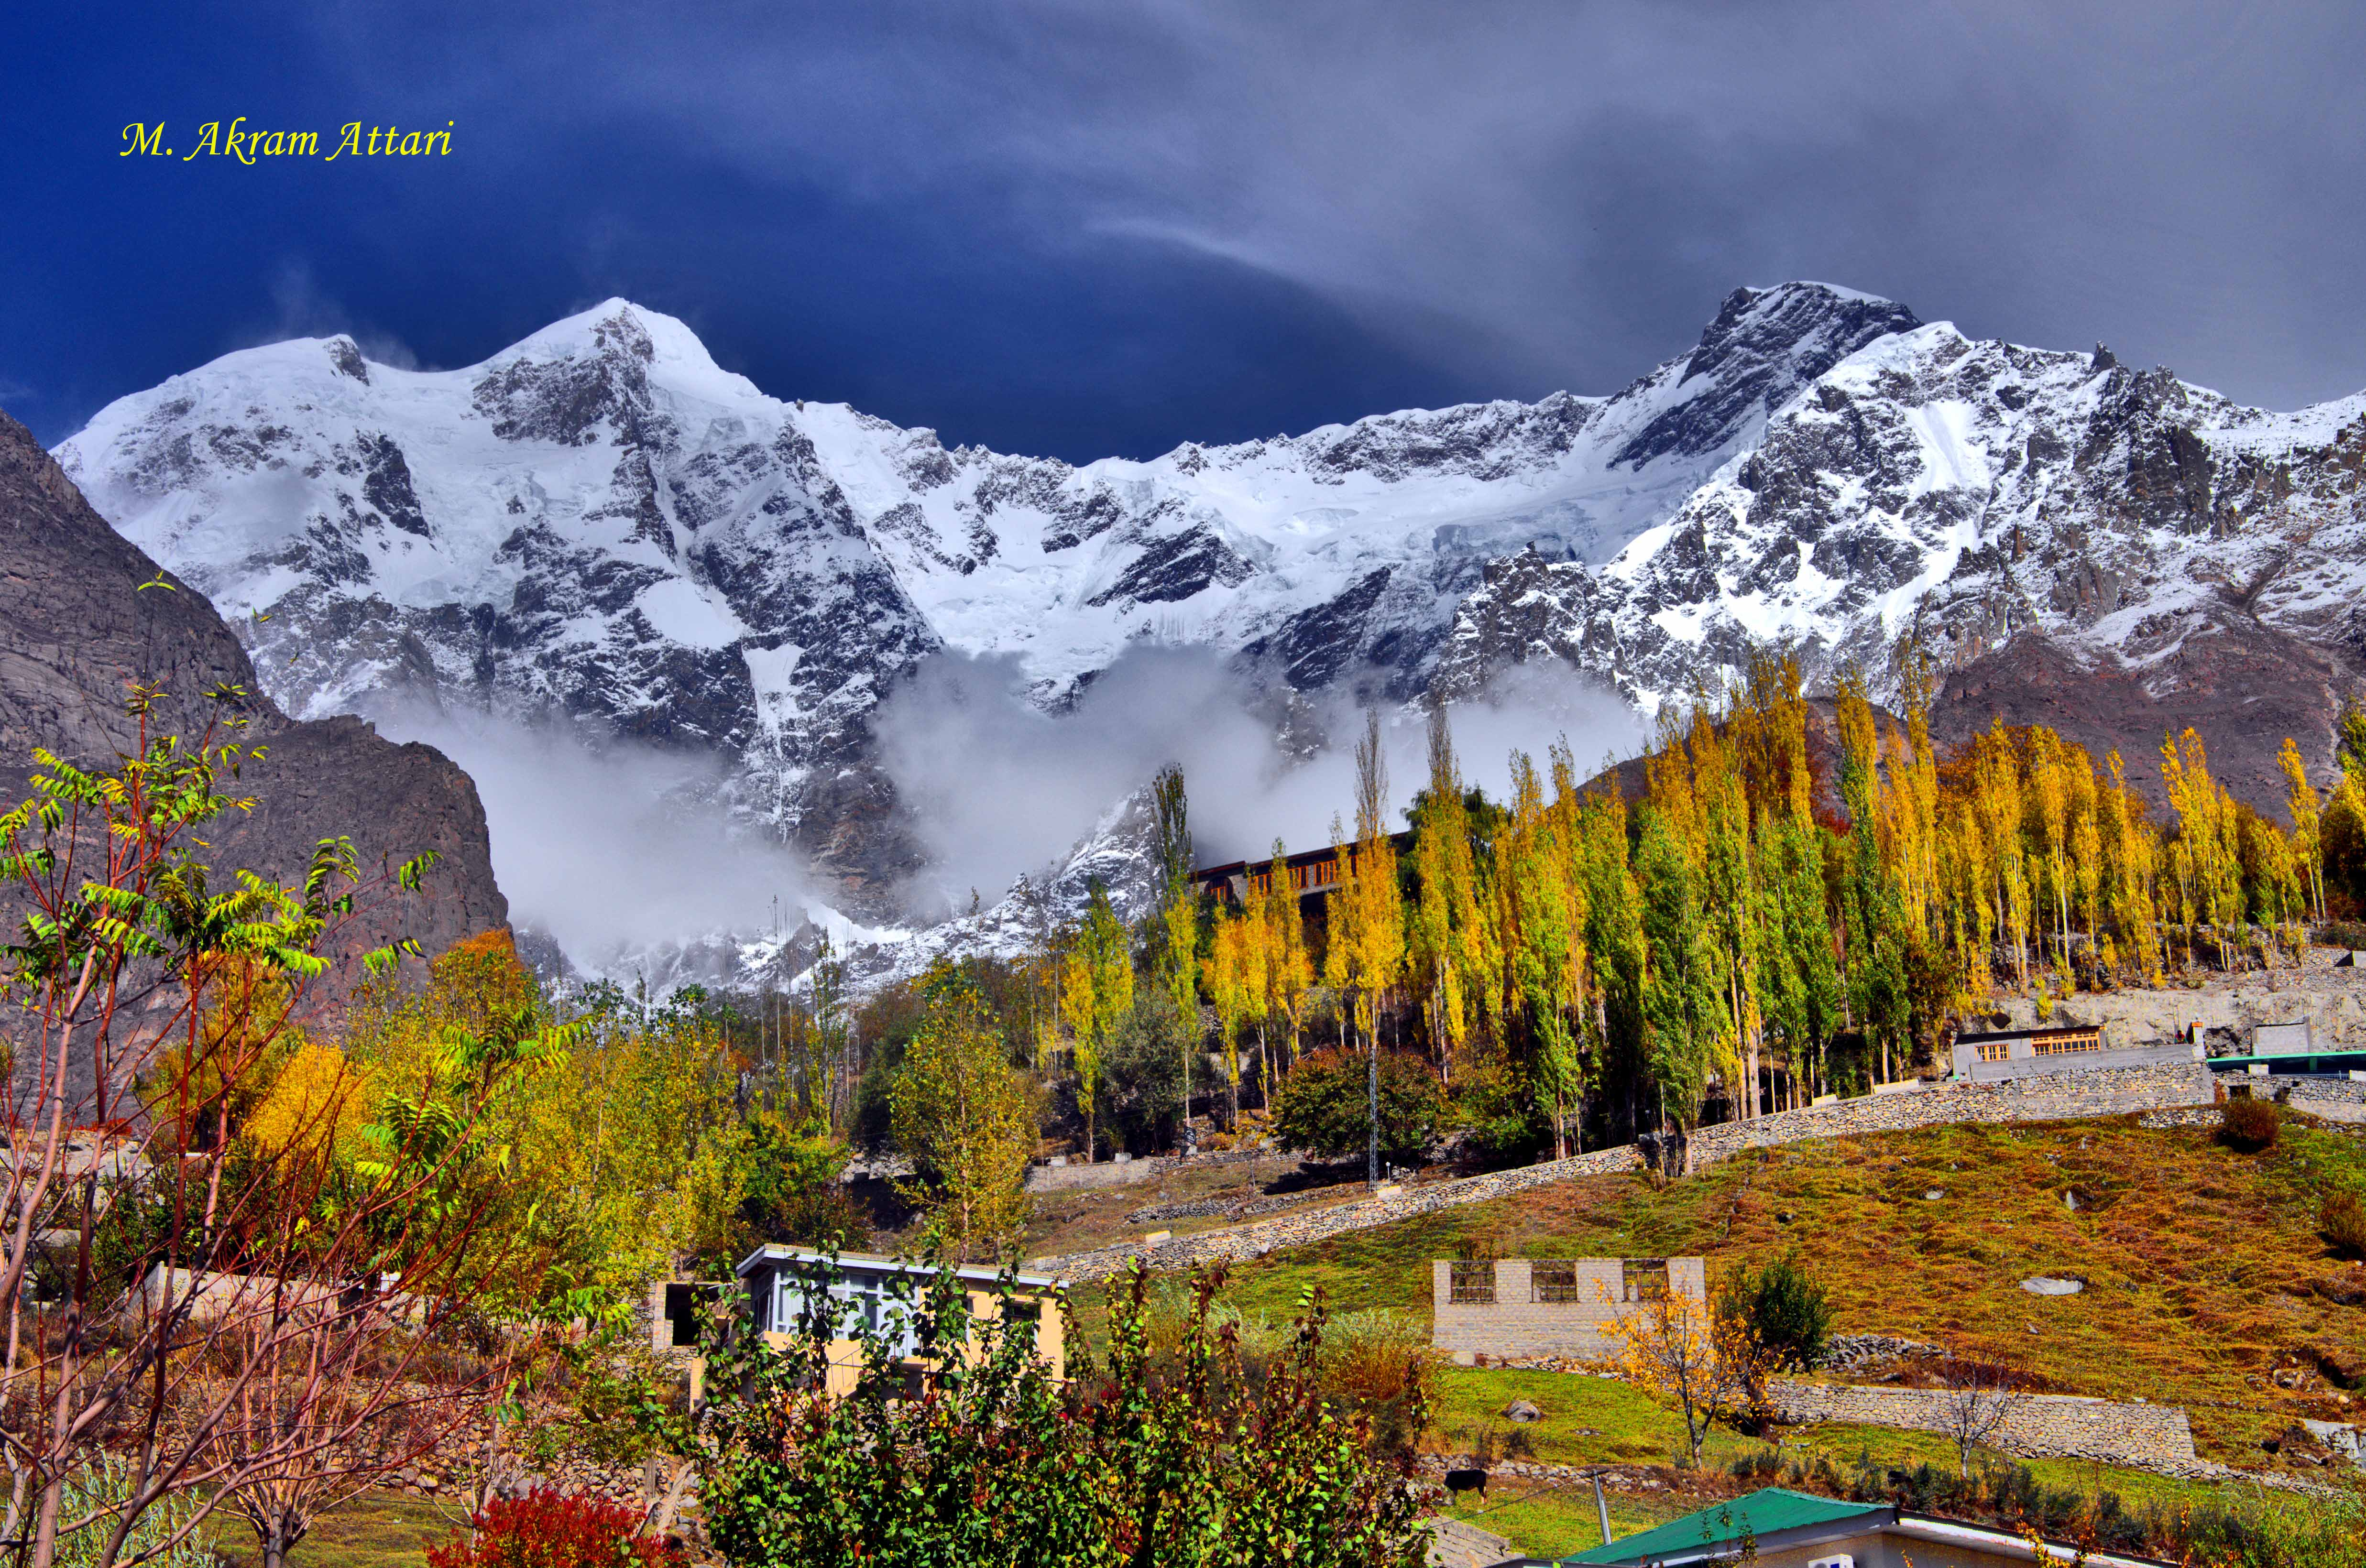 Ulter Peak, Hunza GB (Pakistan)